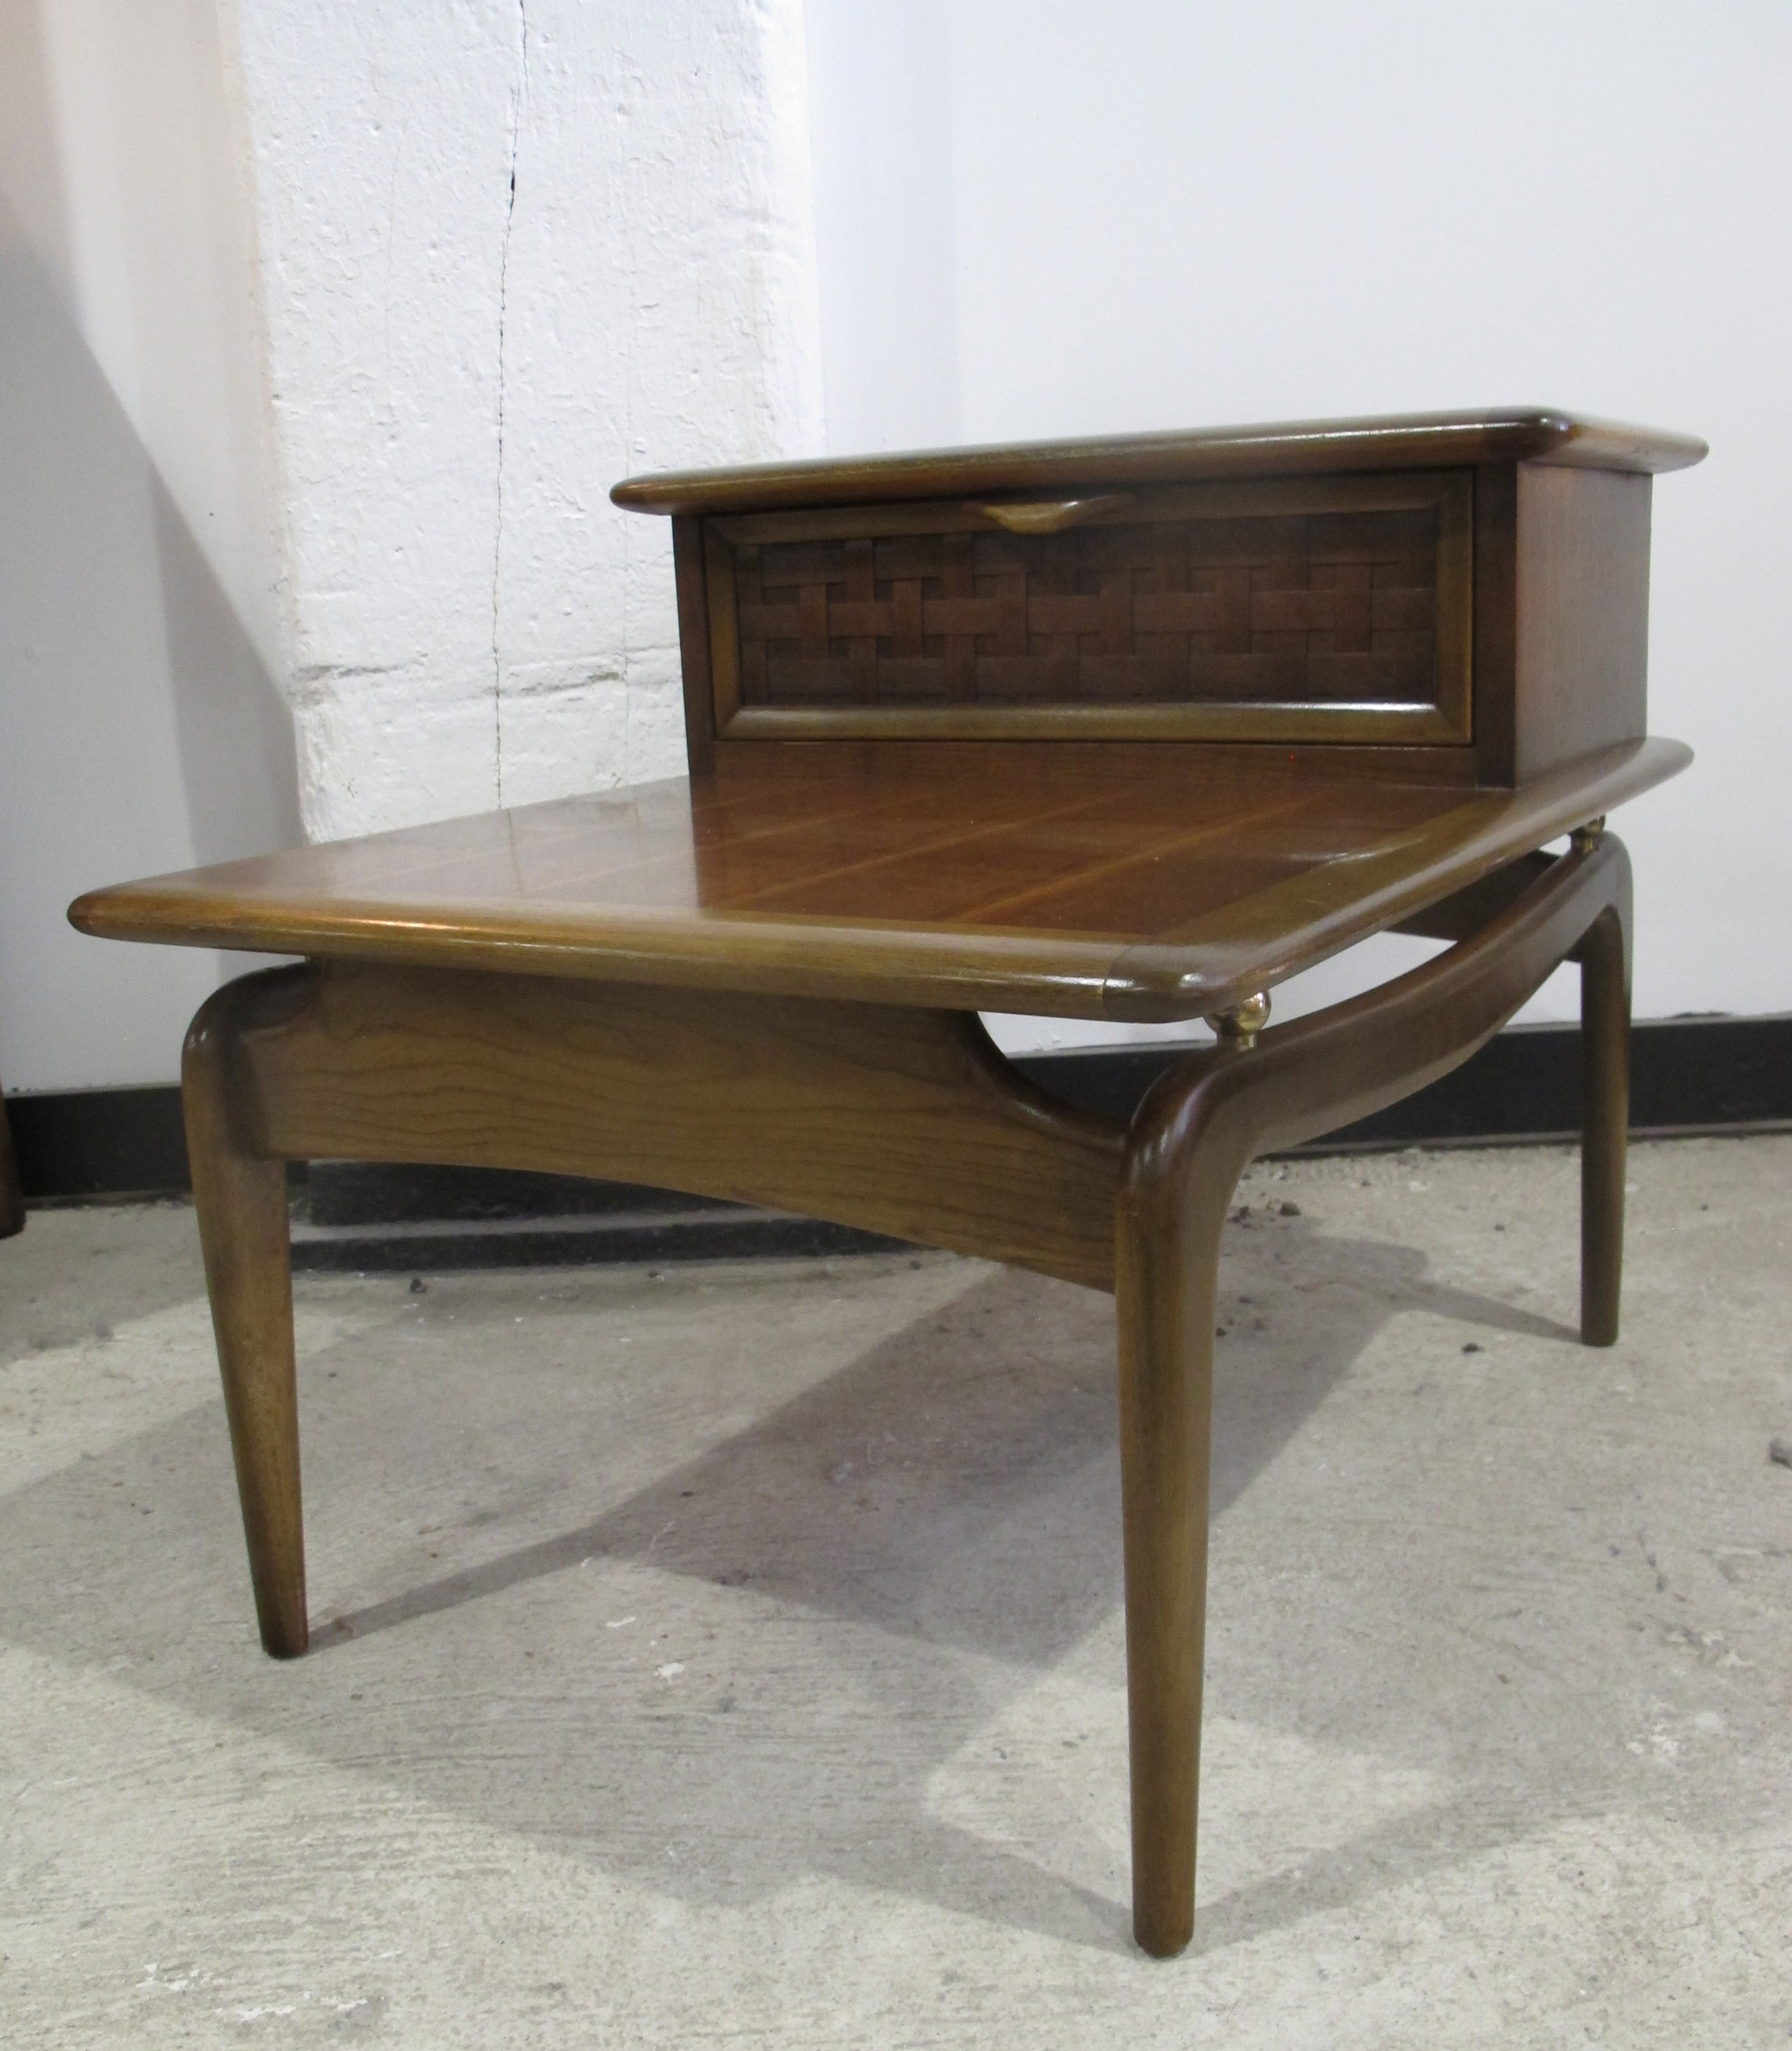 MID CENTURY PERCEPTION OAK & WALNUT STEP END TABLE BY LANE